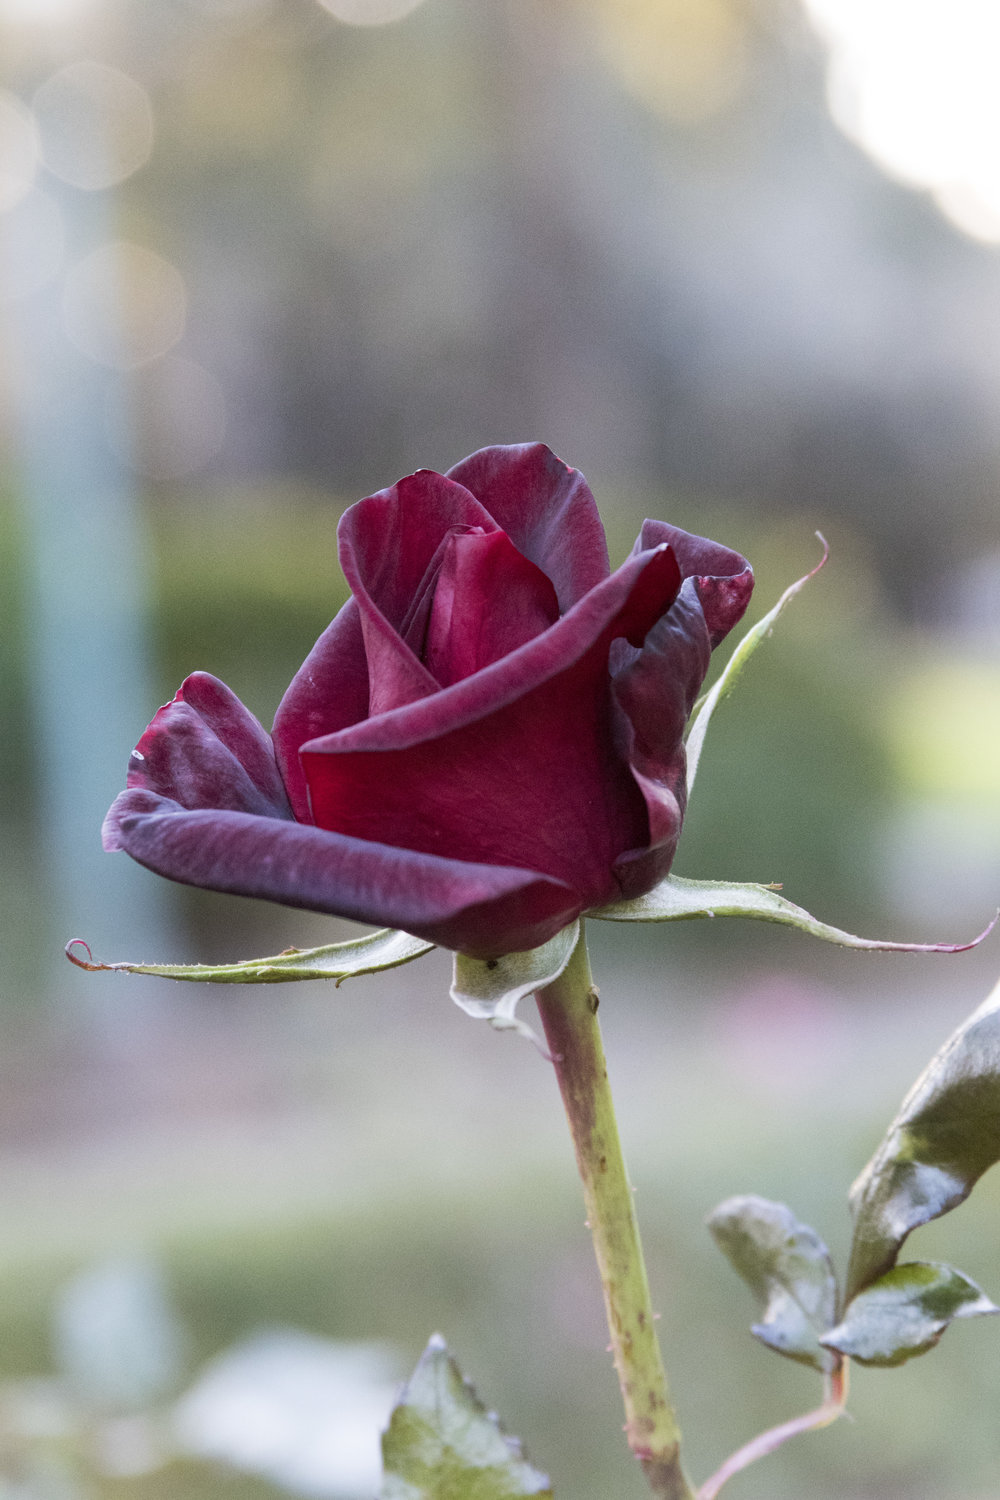 121816-deep red rose backlight.jpg